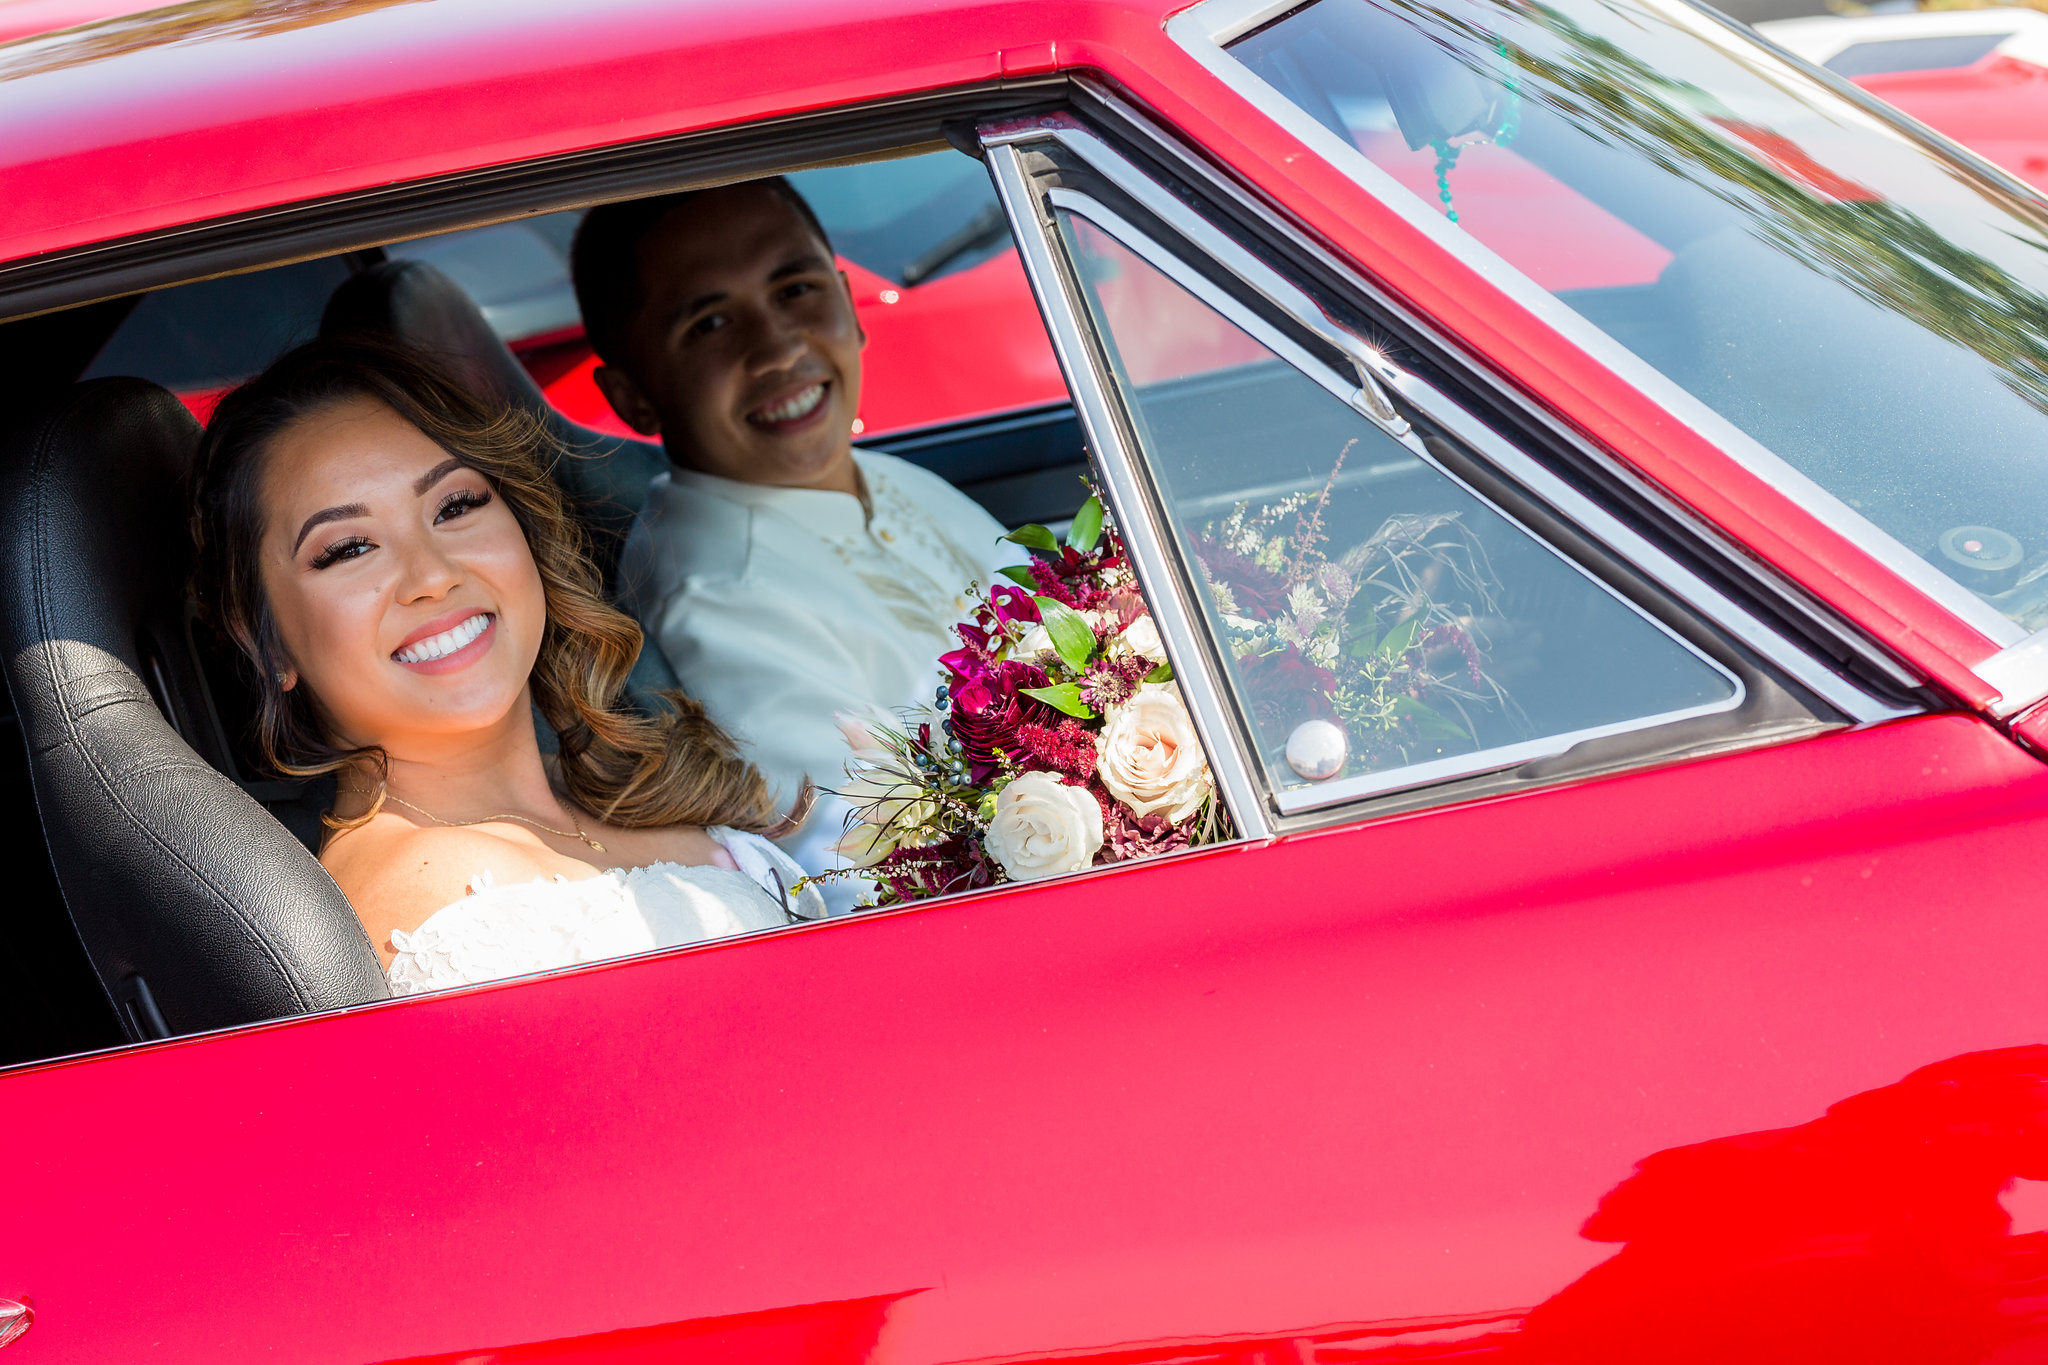 travis air force base wedding-8.jpg